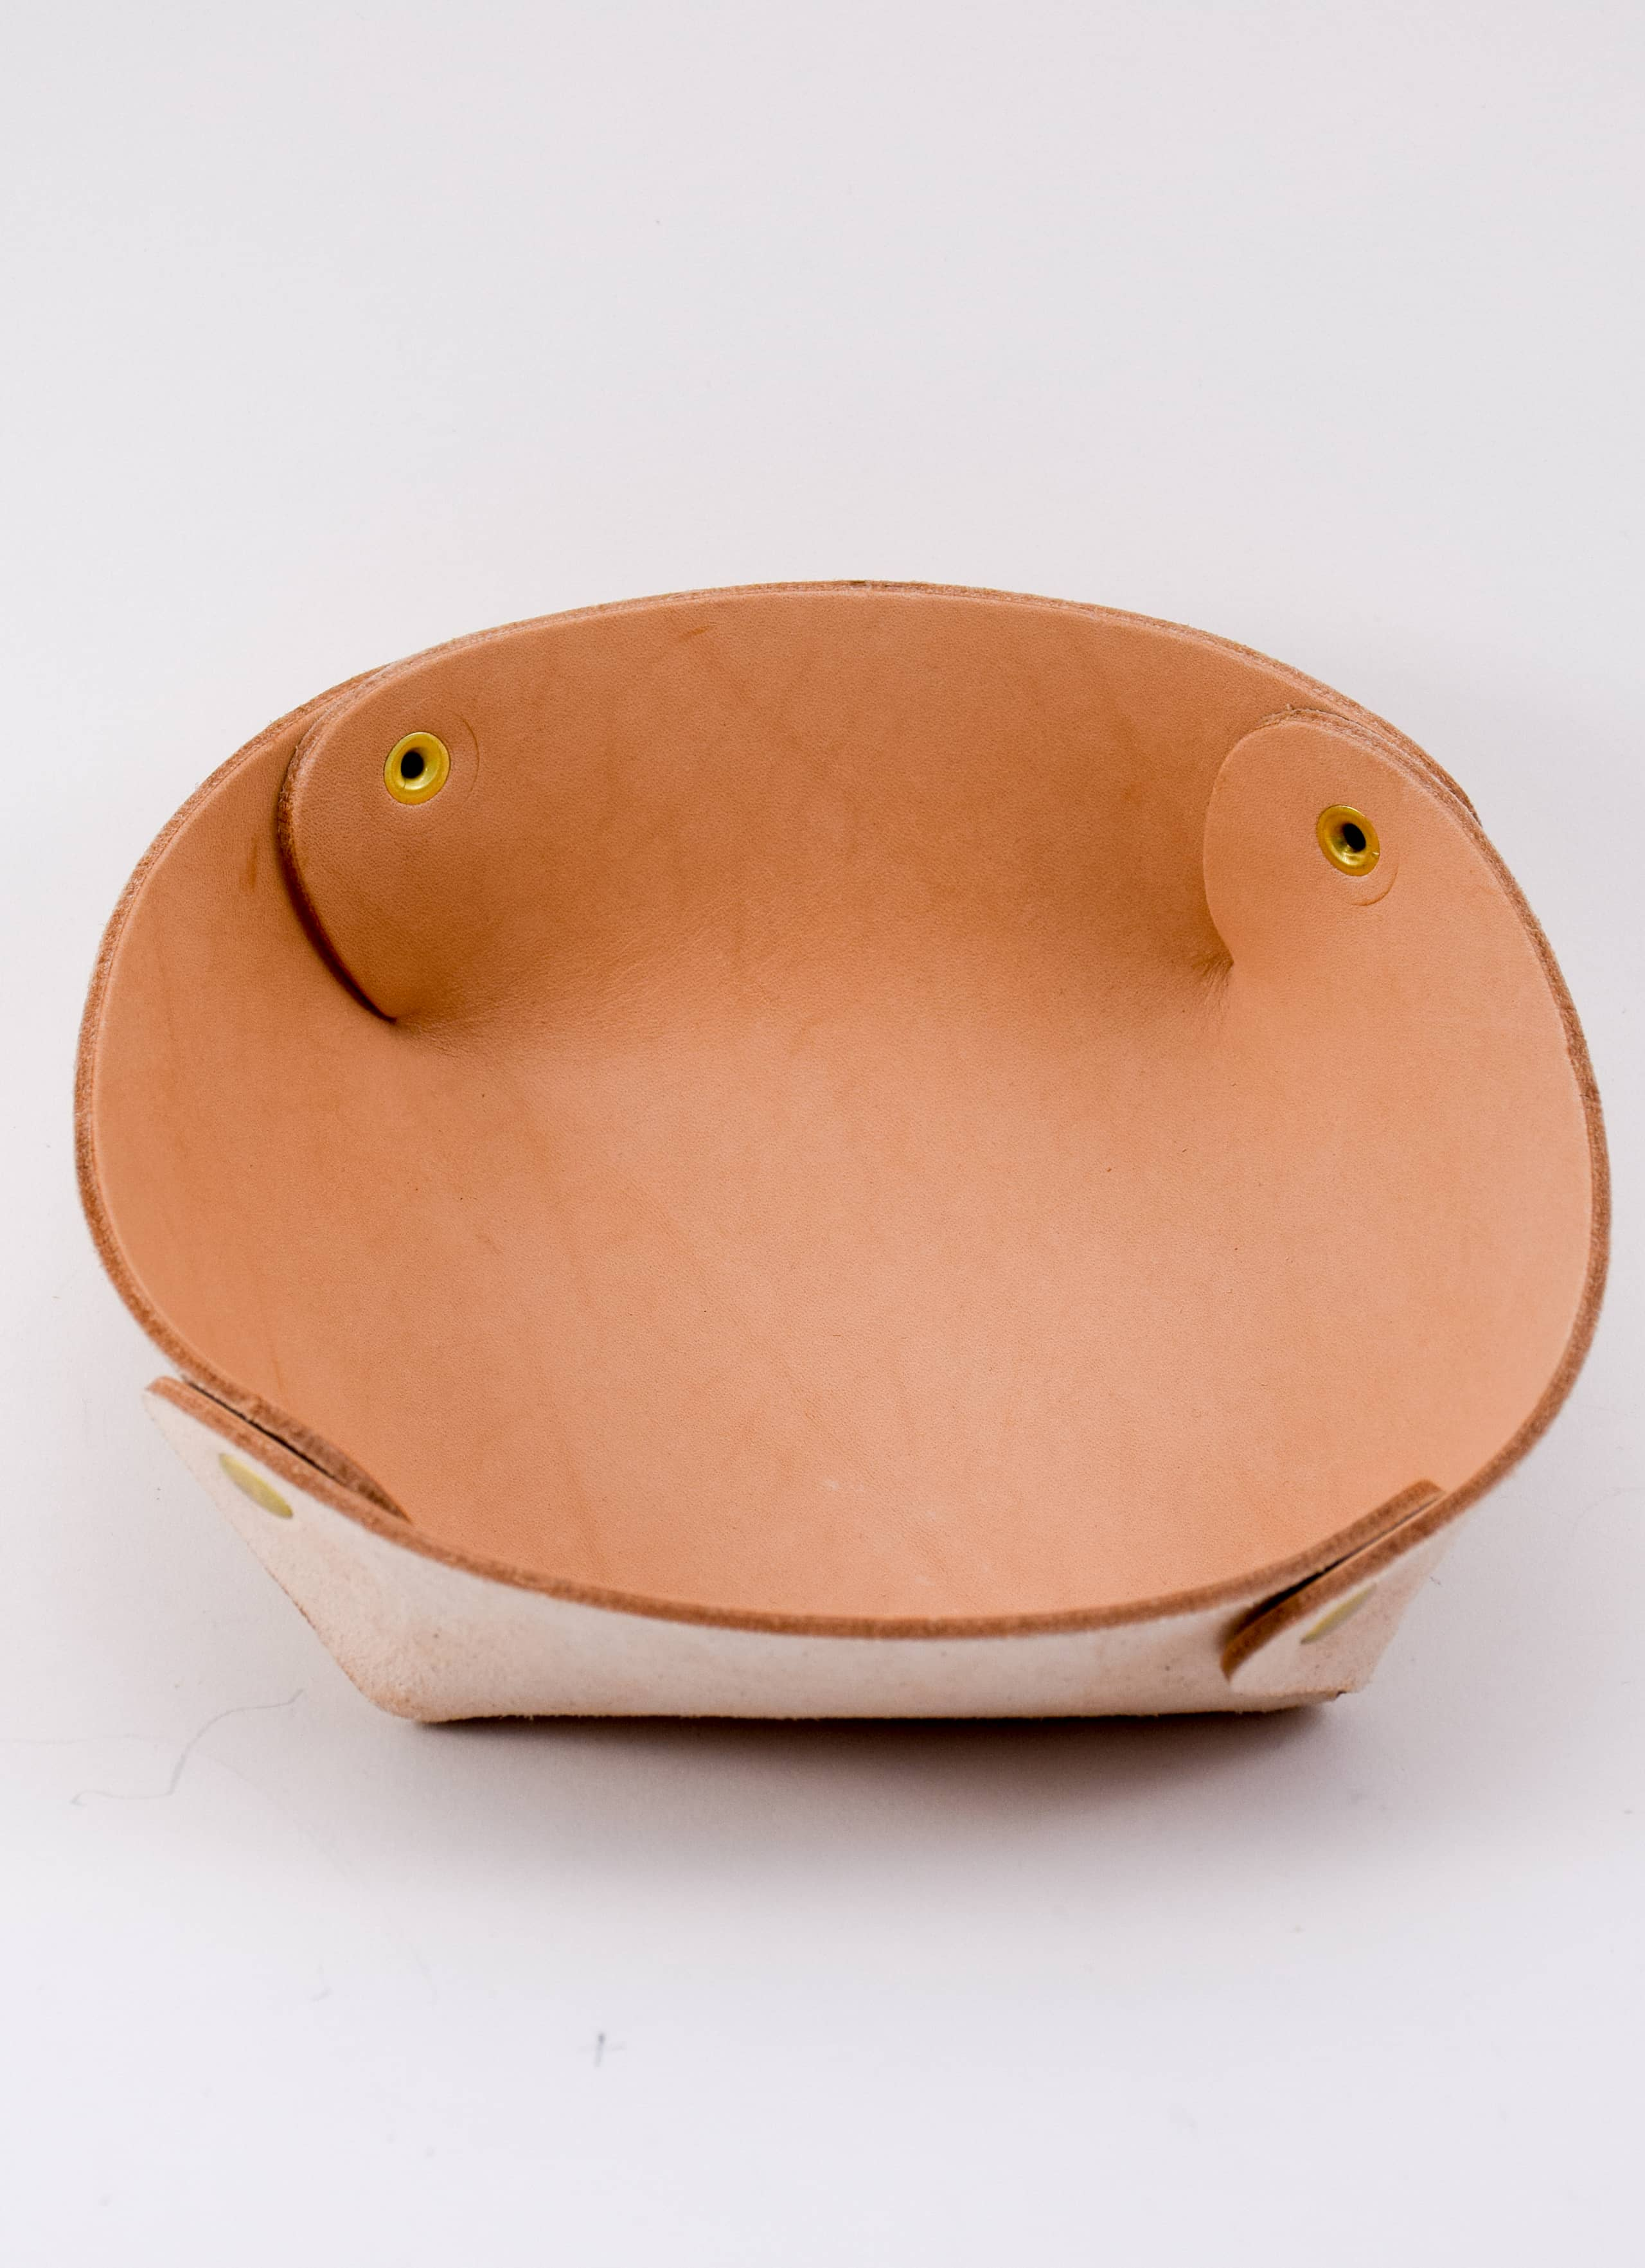 Raw and Order - Raw Leather Bowl